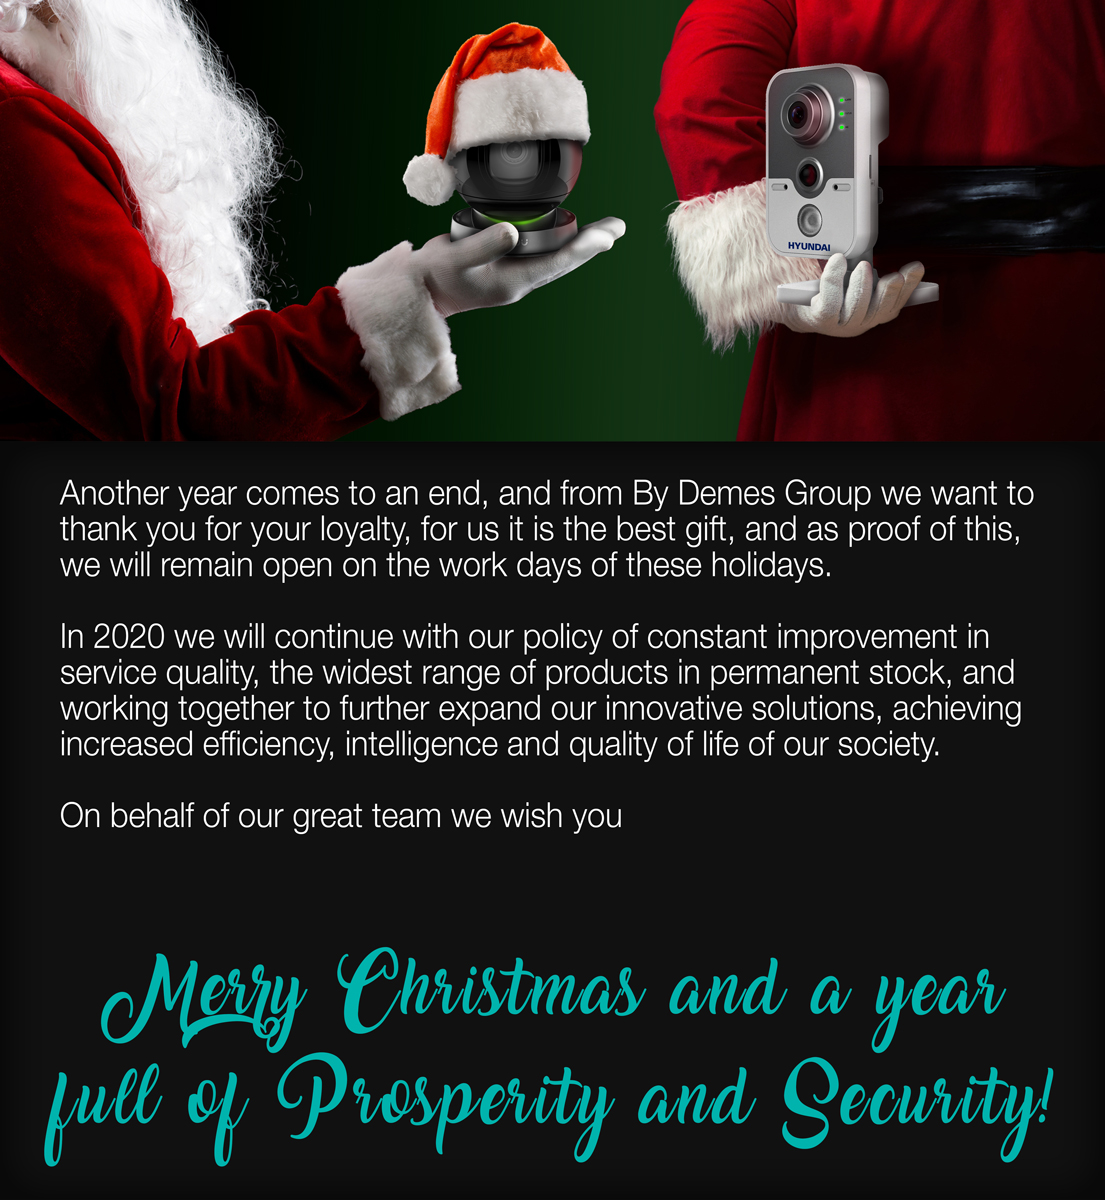 Merry Christmas and a year full of Prosperity and Security!